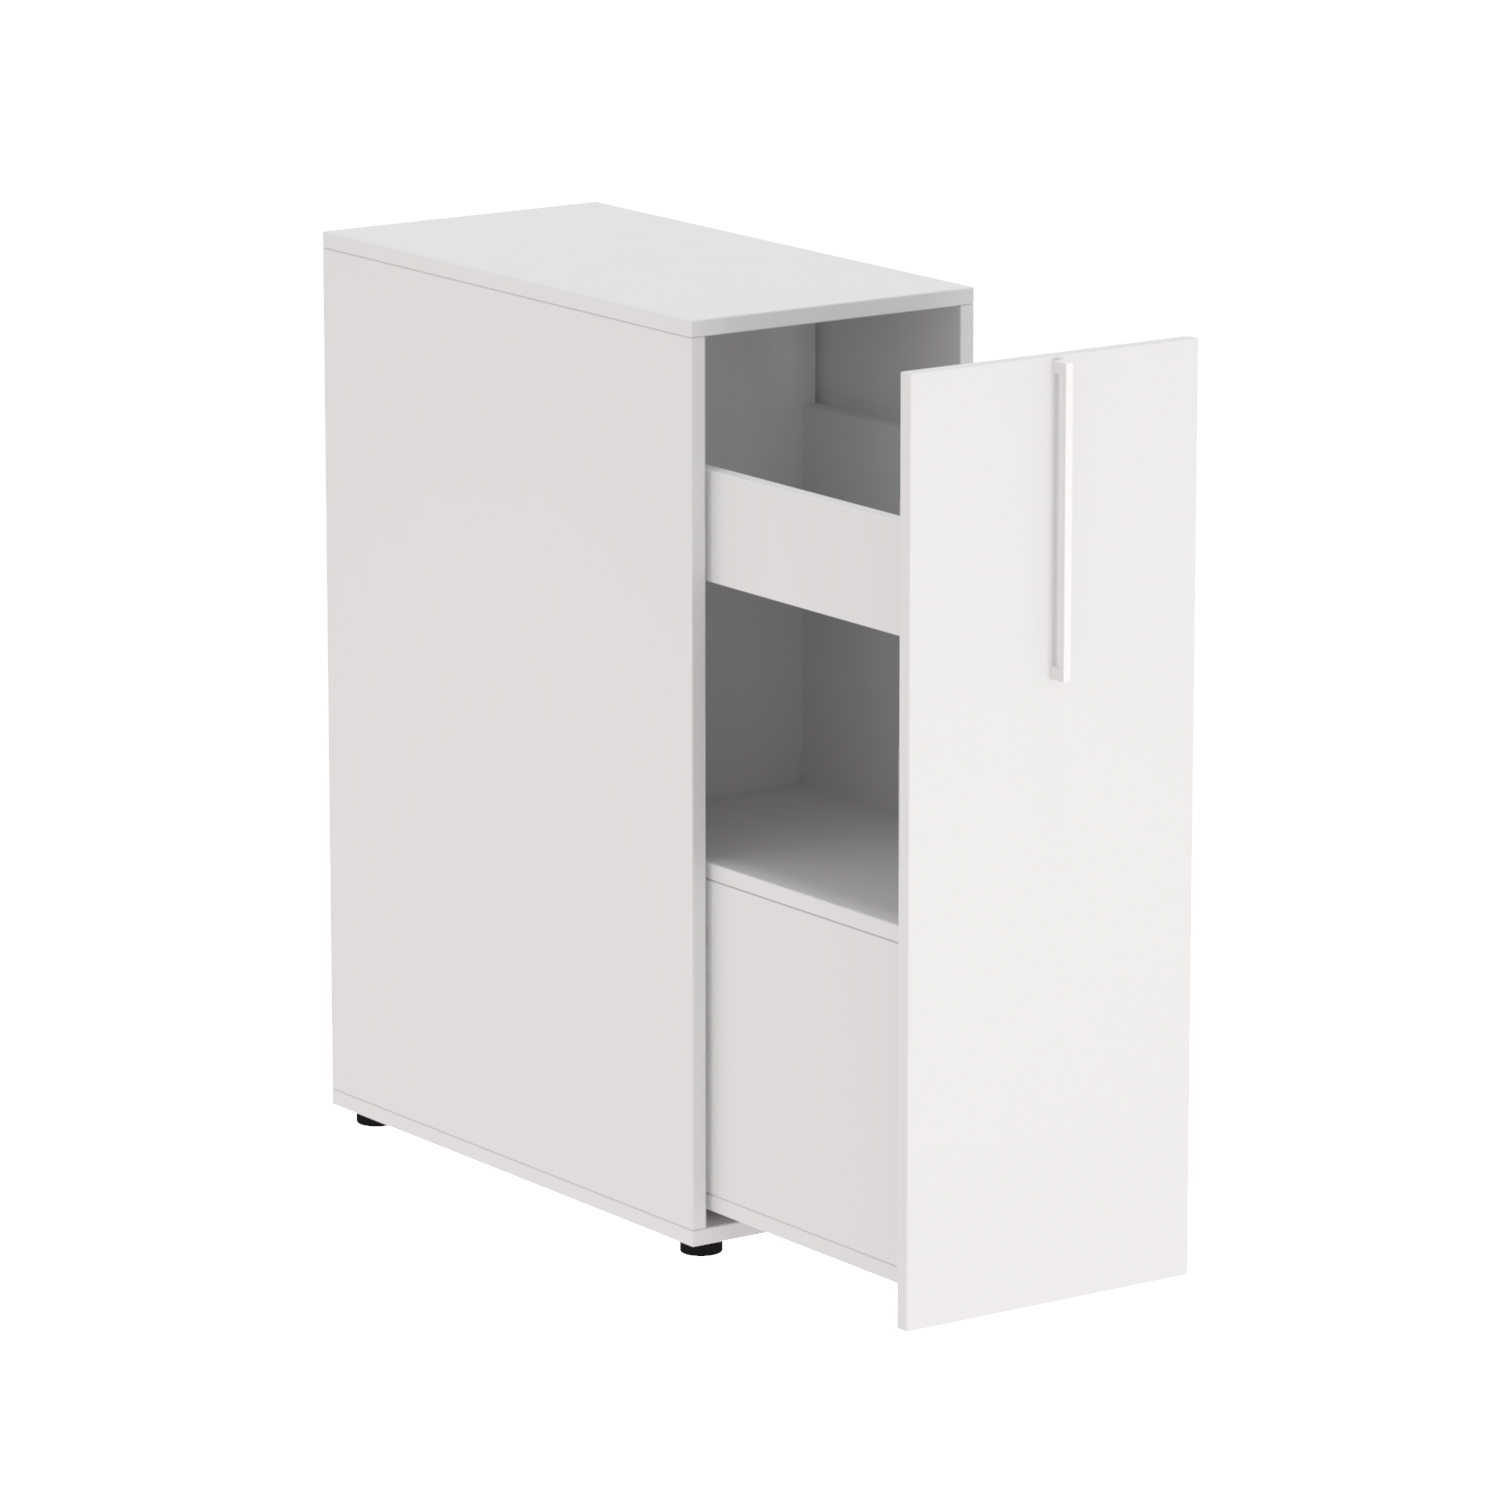 Pullout Storage 02_white_right.jpg